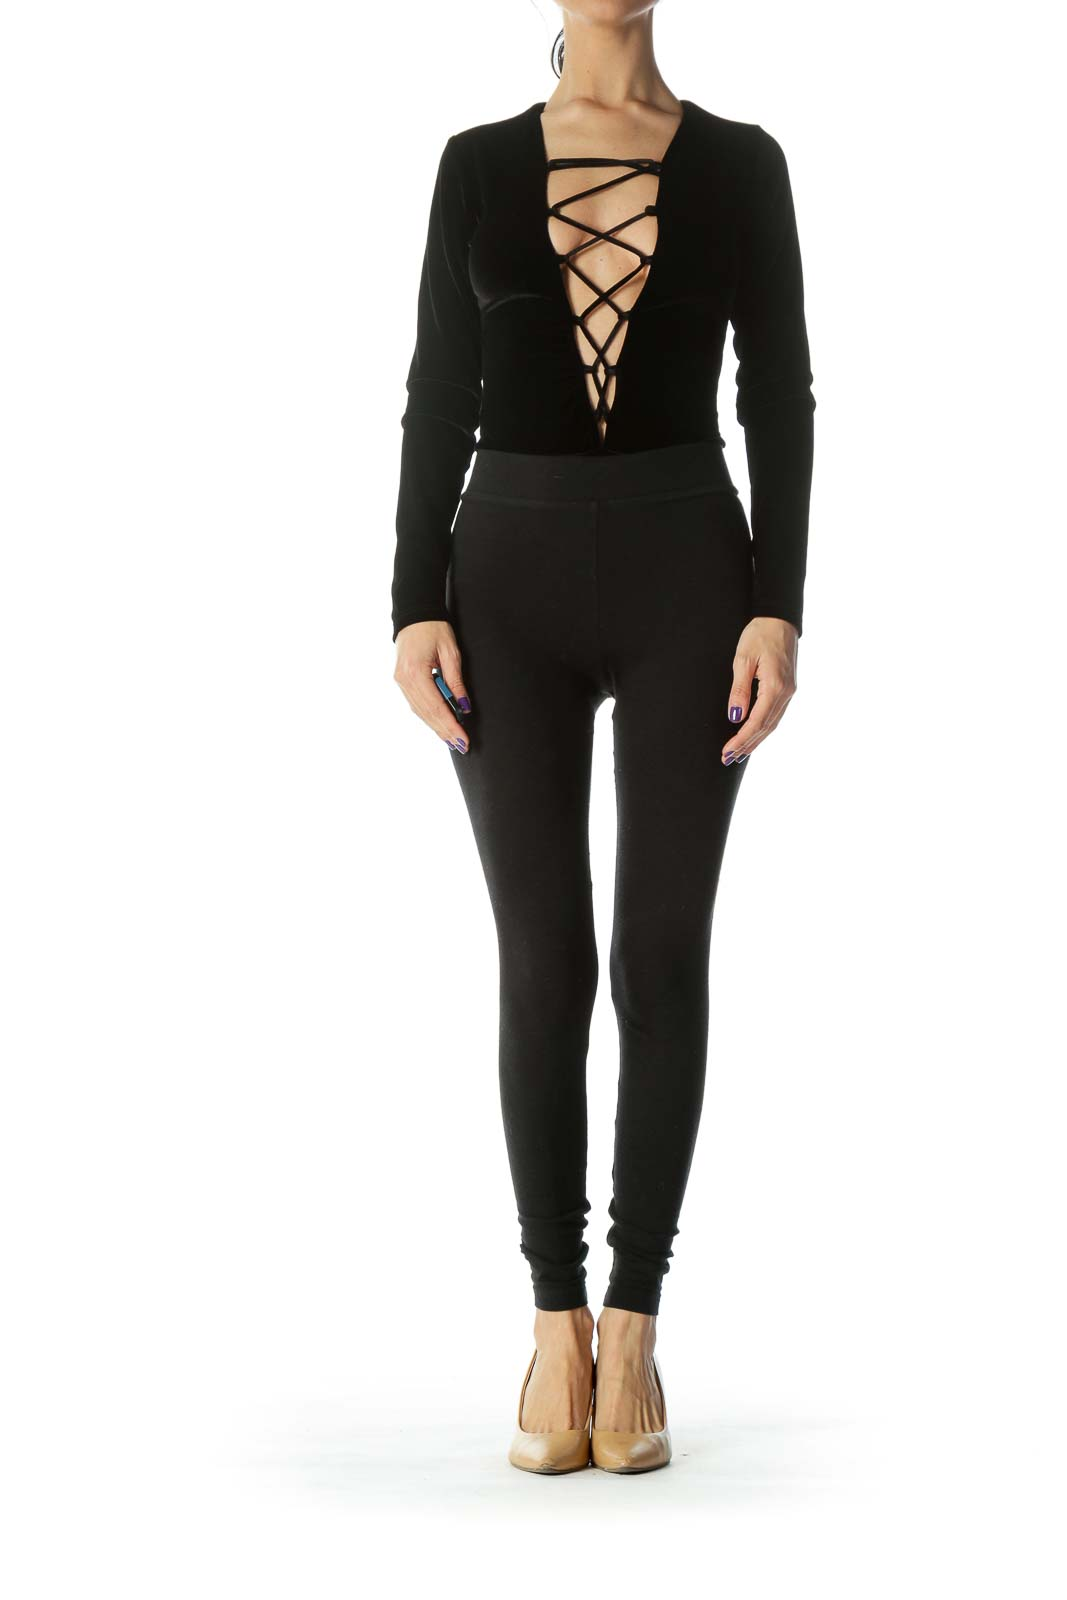 Black Velvet Recycled-Fabric Lace-up Long-Sleeve Body-Suit